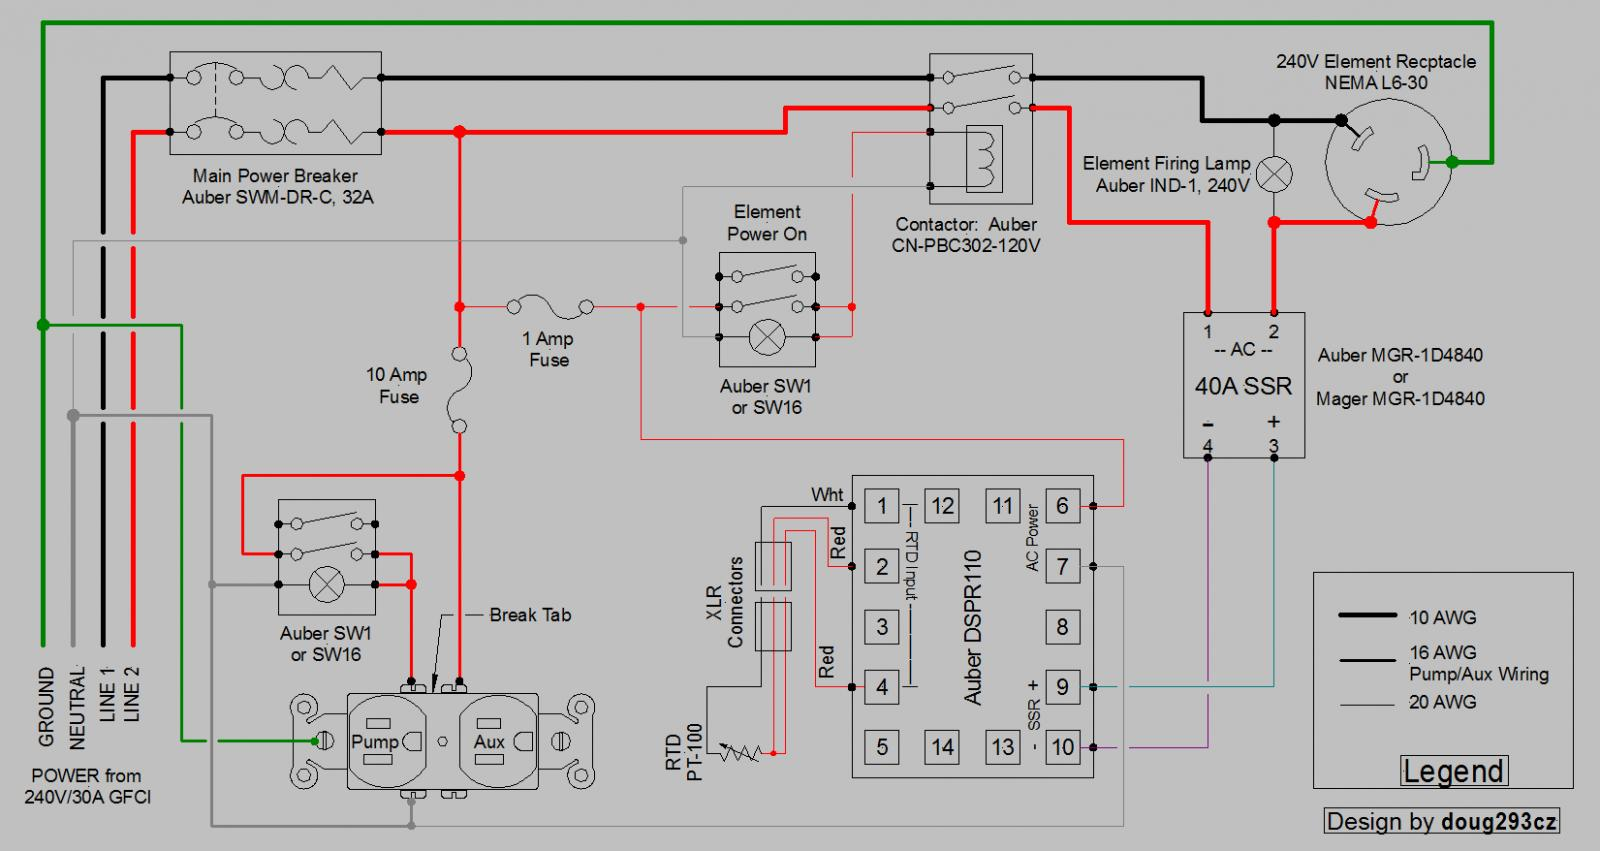 Unique Pid Wiring Diagram Inspiration - Electrical and Wiring ...